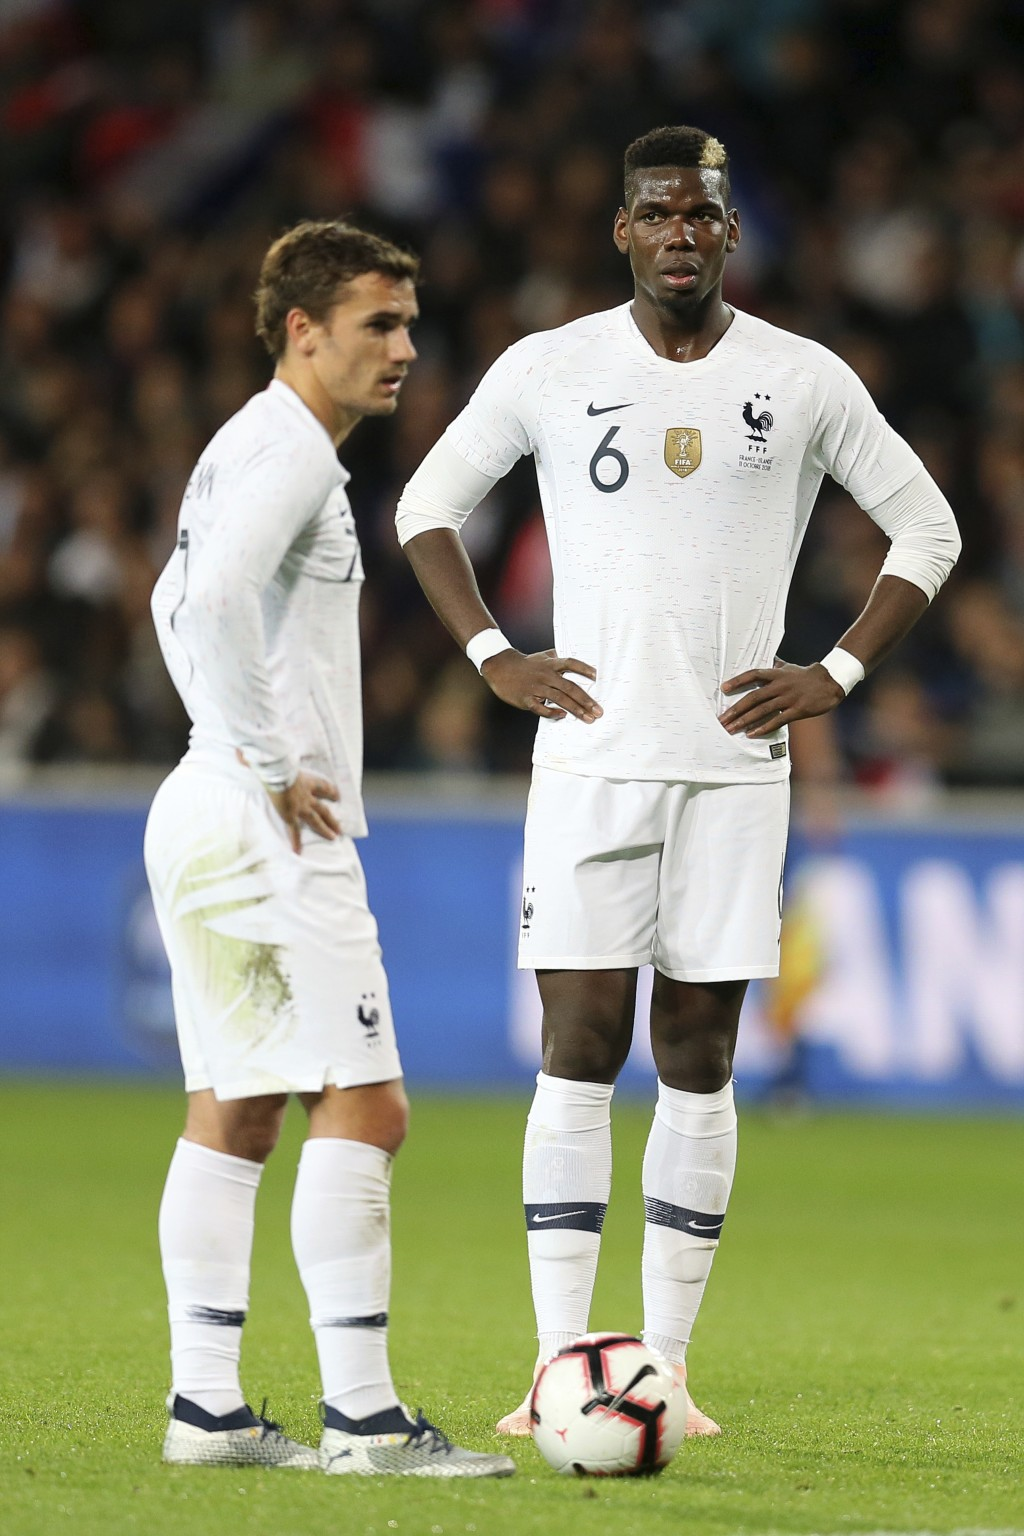 France's Antoine Griezmann, and Paul Pogba stand prior to shoot a free kick during a friendly soccer match between France and Iceland, in Guingamp, we